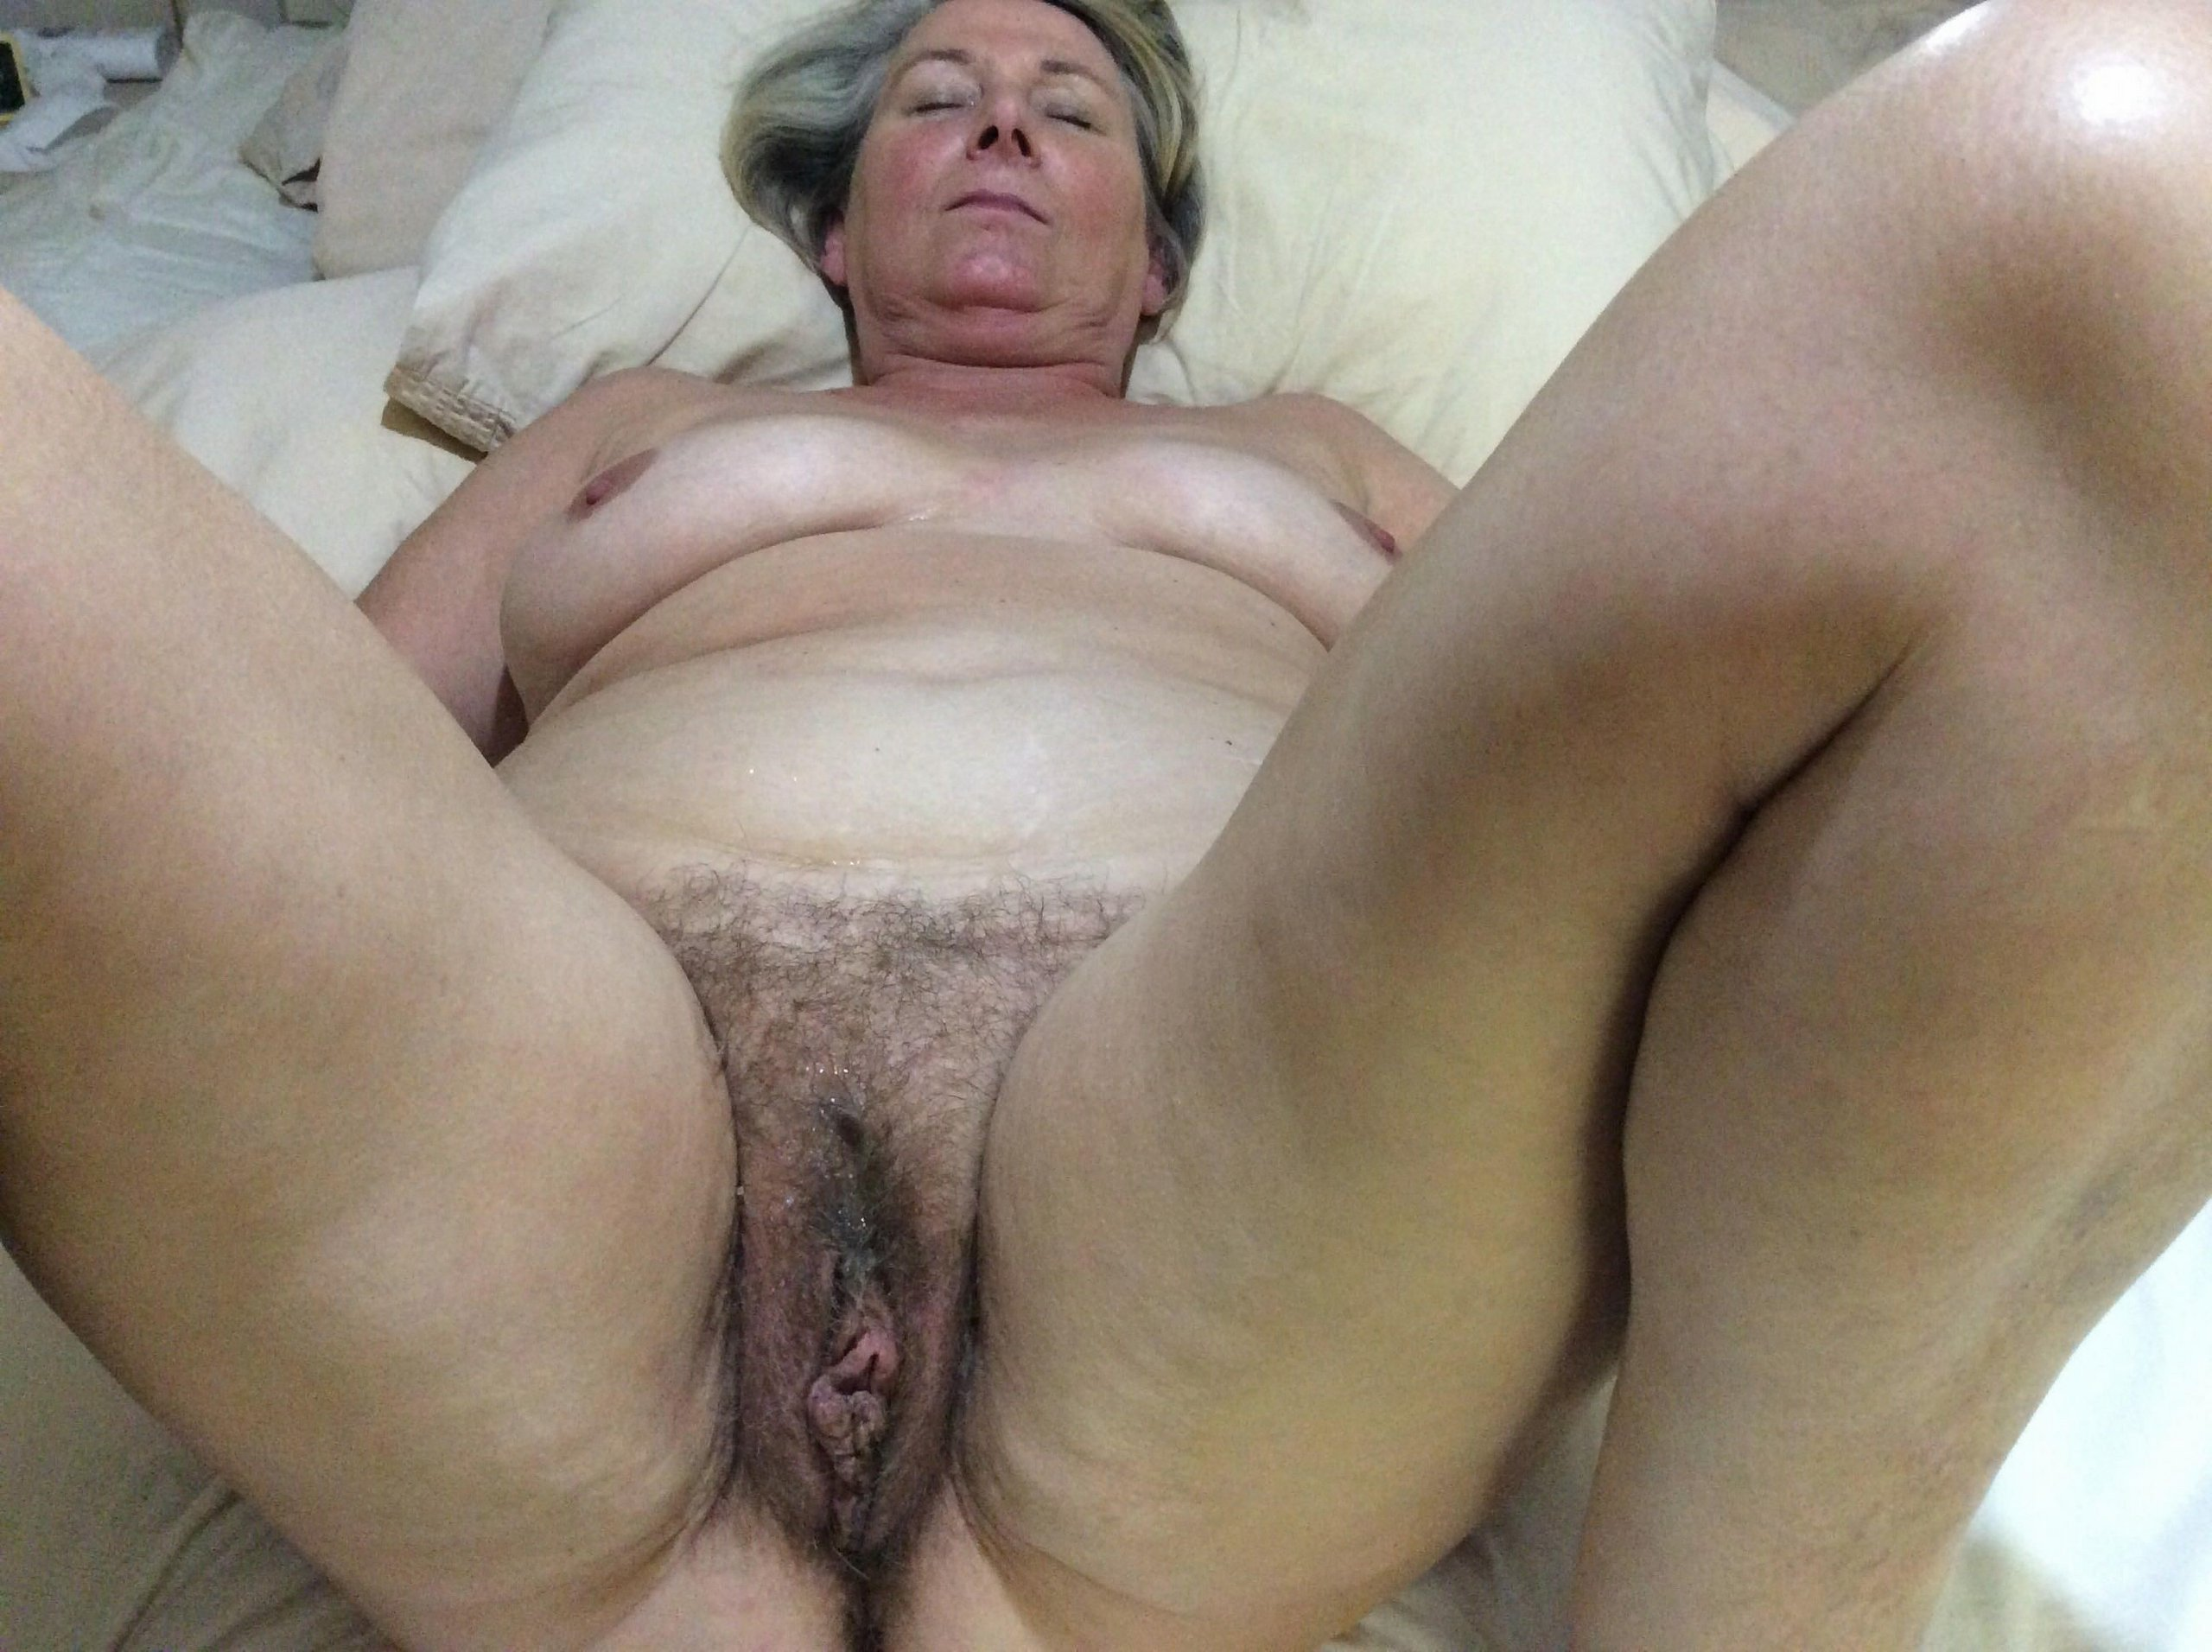 Old Pussy Pics, Mature Pussy Galleries, Granny Pussy Pictures